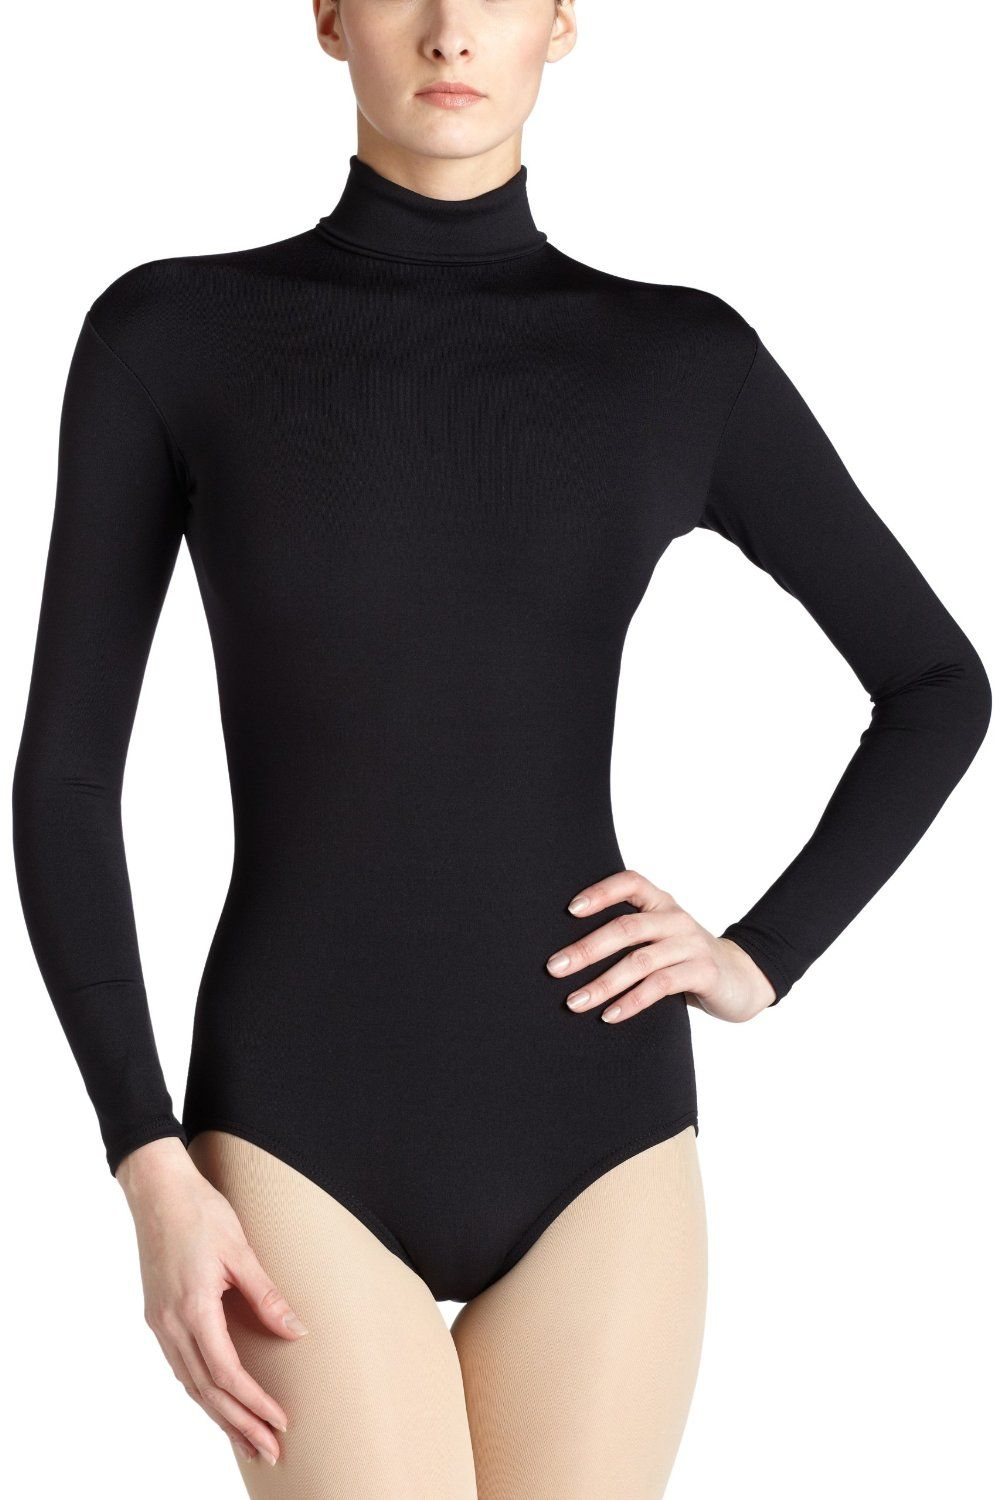 Women's Leotards (86) Exceptional quality dance leotards for ballet and contemporary in a variety of designs, including regulation approved colours and styles. Choose from cotton, lycra and sweat wicking materials with a range of different sleeve straps from camisole, to tank, to longer sleeved garments.